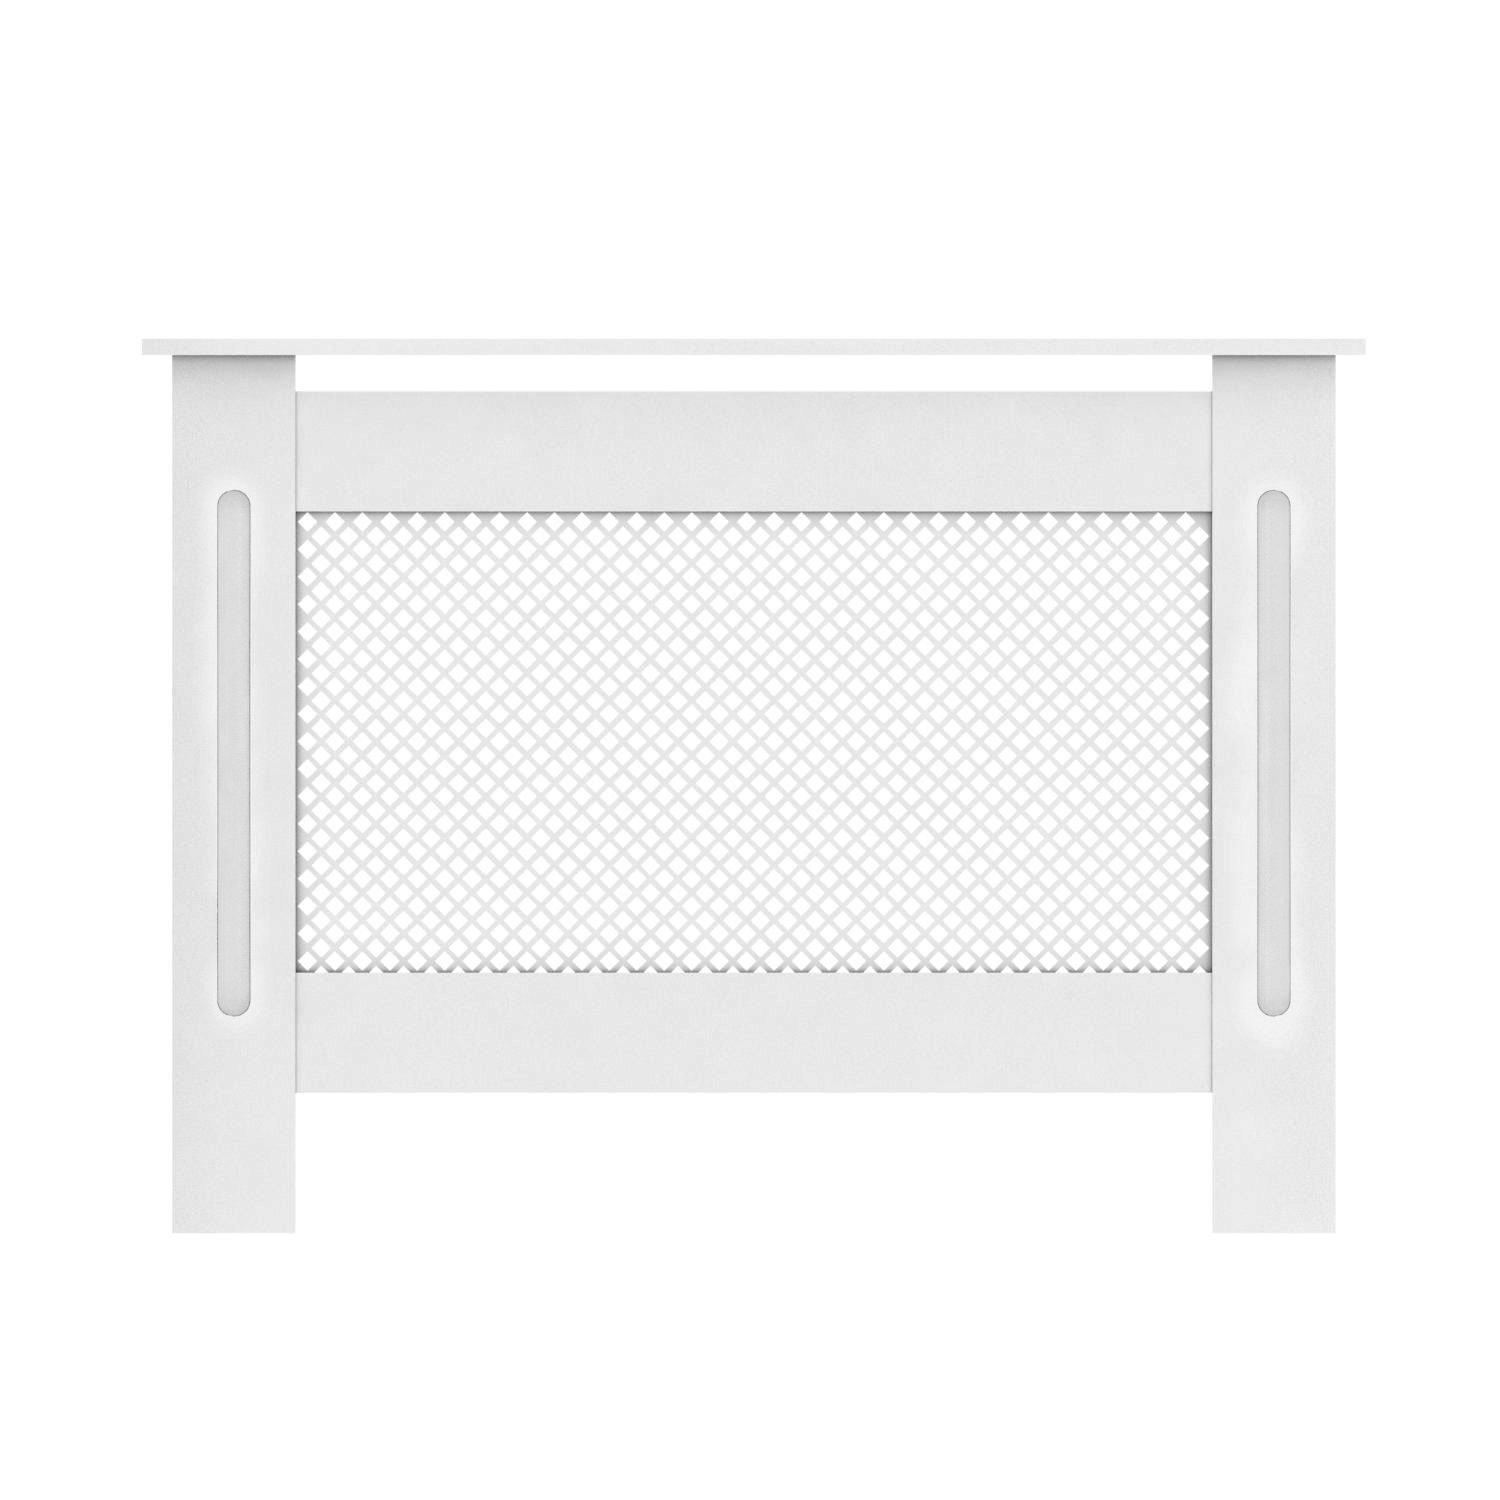 Happyjoy Painted Radiator Cover Cabinet Modern Diamond Style In White MDF - Small 1117x817x190mm